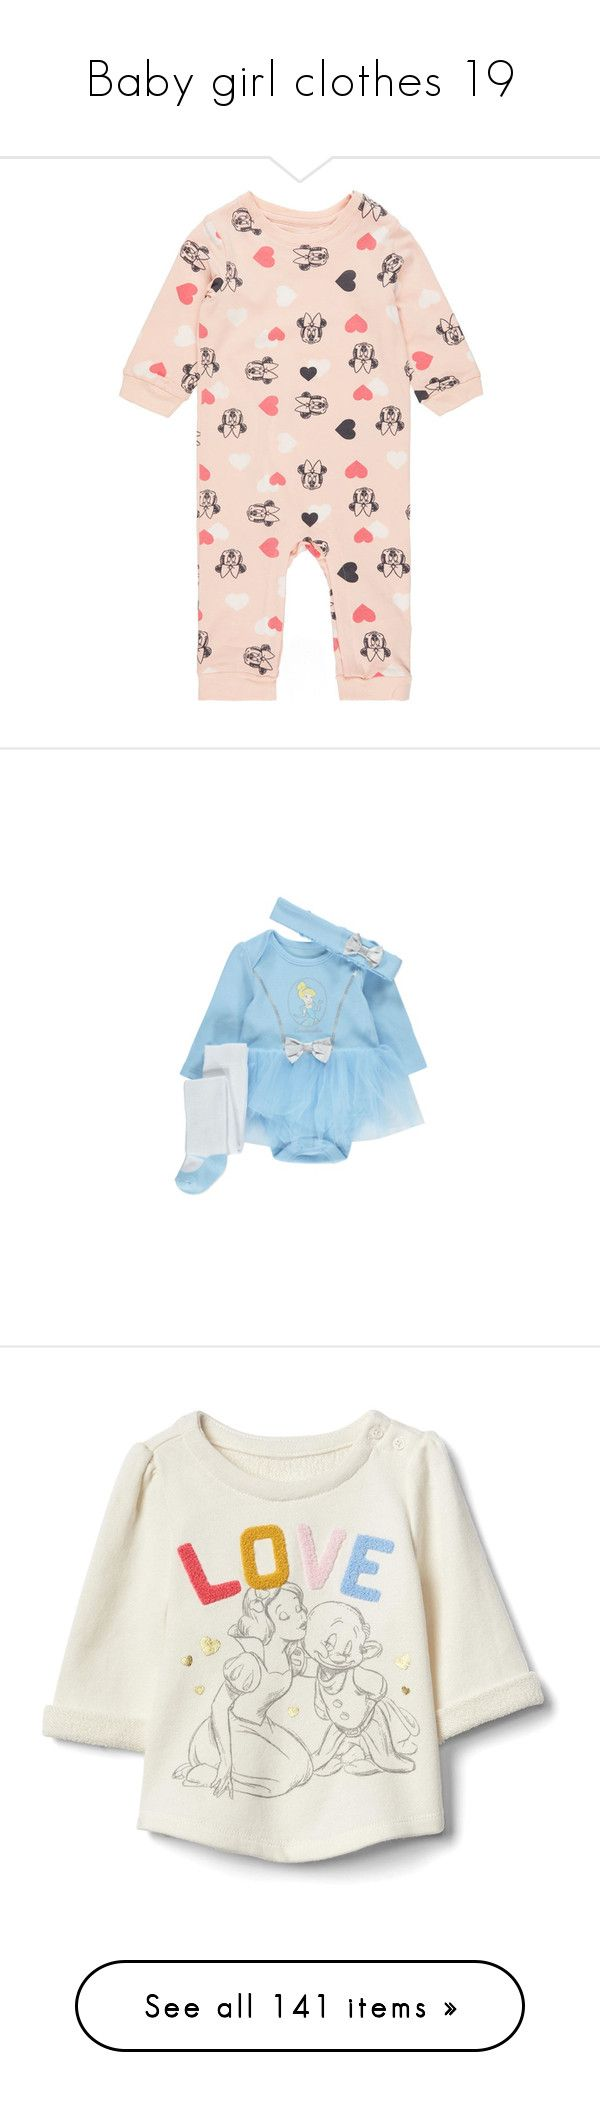 """""""Baby girl clothes 19"""" by shannongarwood ❤ liked on Polyvore featuring blue, baby girl, baby, tops, polka dot top, red long sleeve top, red polka dot top, long sleeve wrap top, bow top and cotton jersey"""